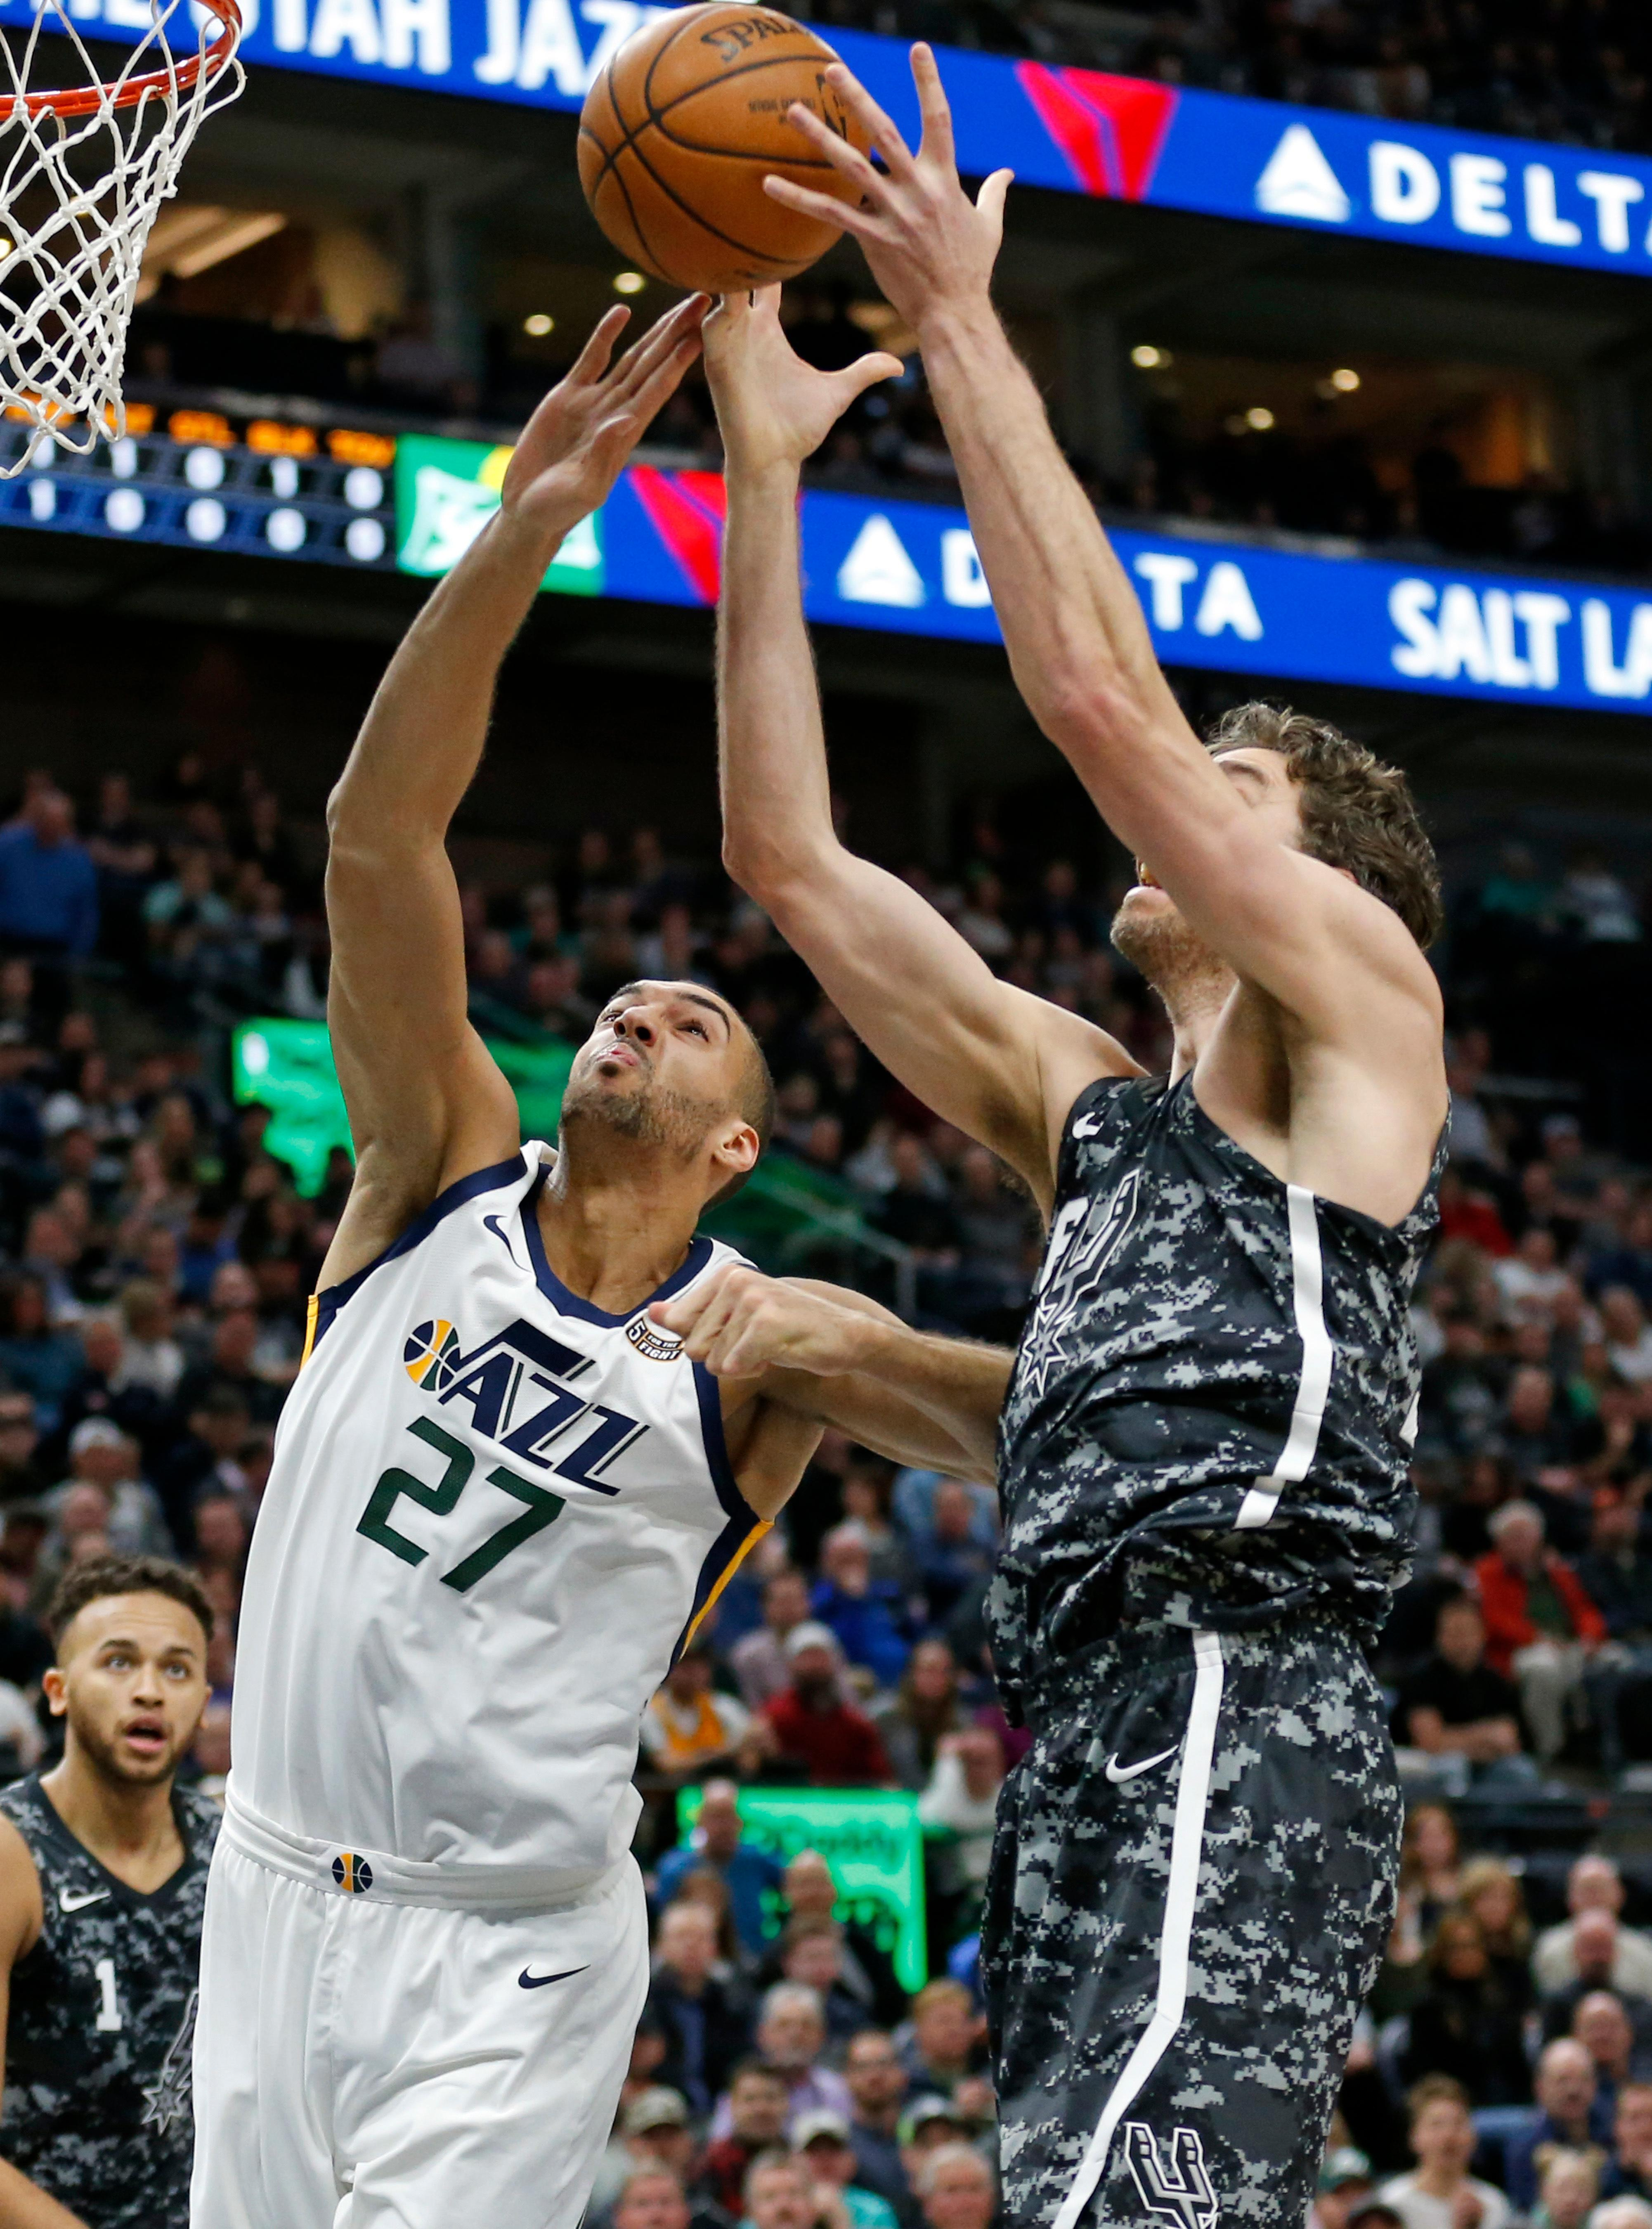 Utah Jazz center Rudy Gobert (27) and San Antonio Spurs center Pau Gasol, right, reach for a rebound in the first half during an NBA basketball game Monday, Feb. 12, 2018, in Salt Lake City. (AP Photo/Rick Bowmer)